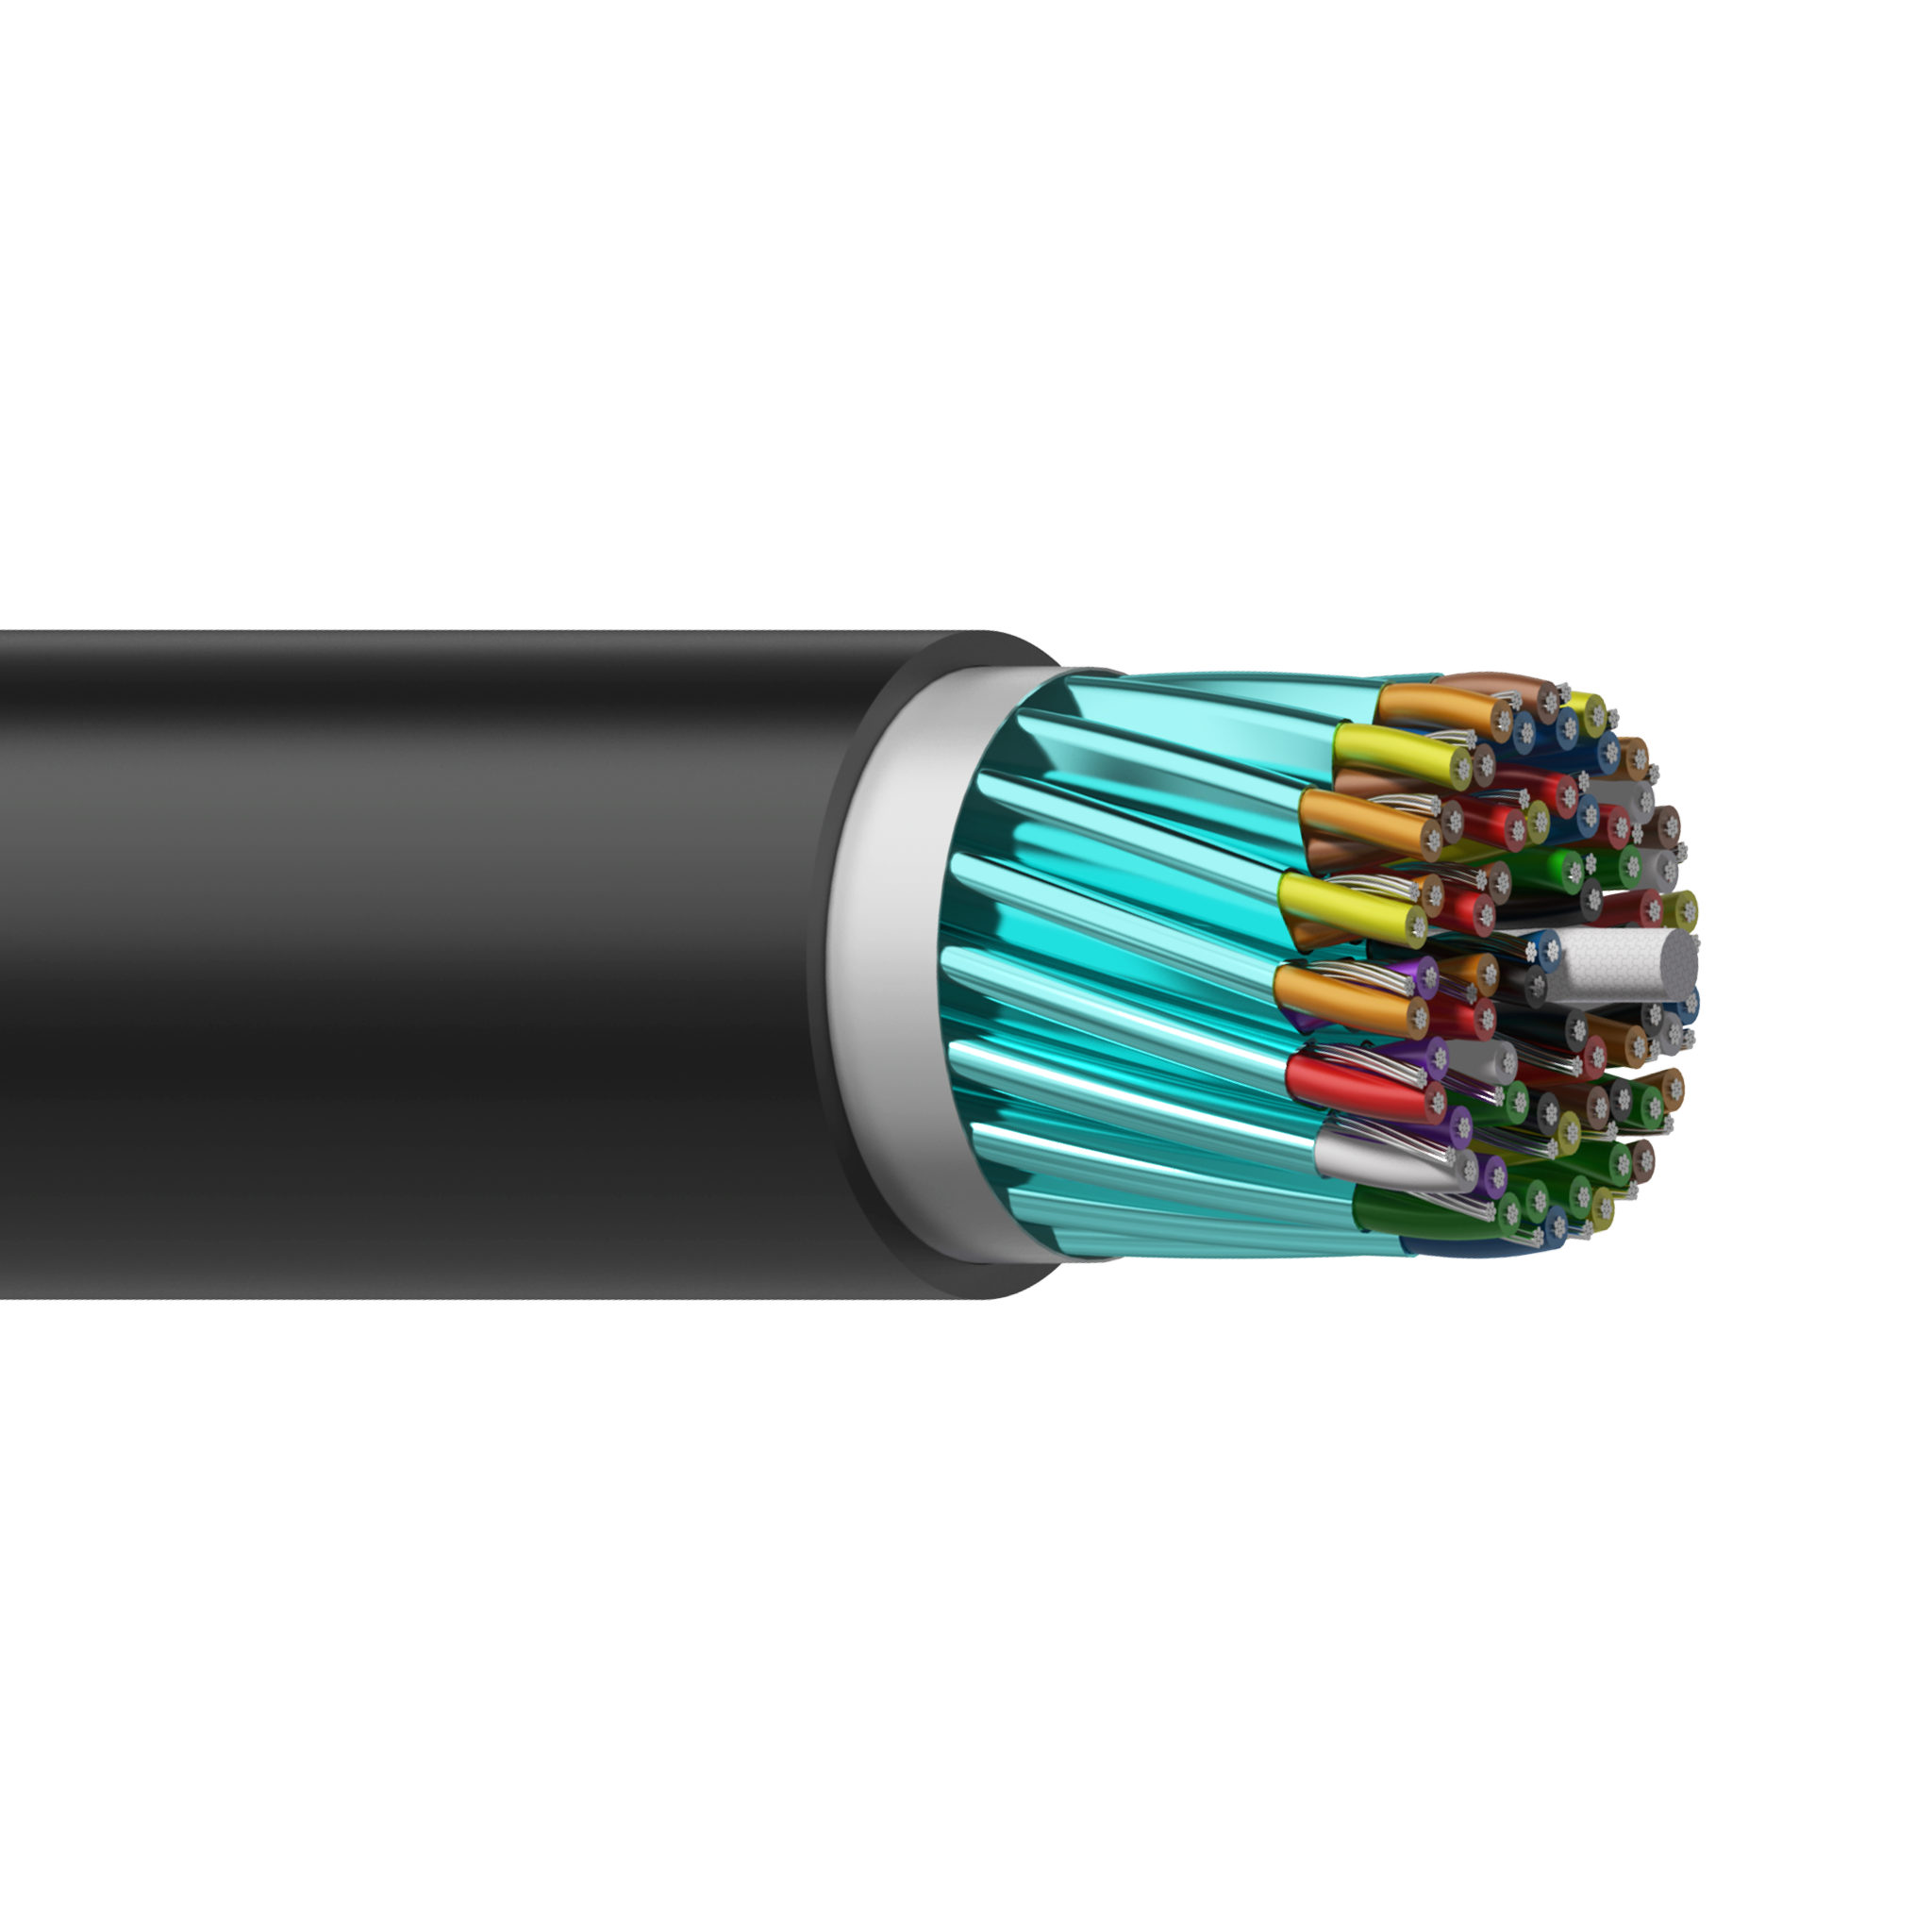 MCR158 - Balanced signal cable - 58 pairs x 0.22 mm² - 24 AWG